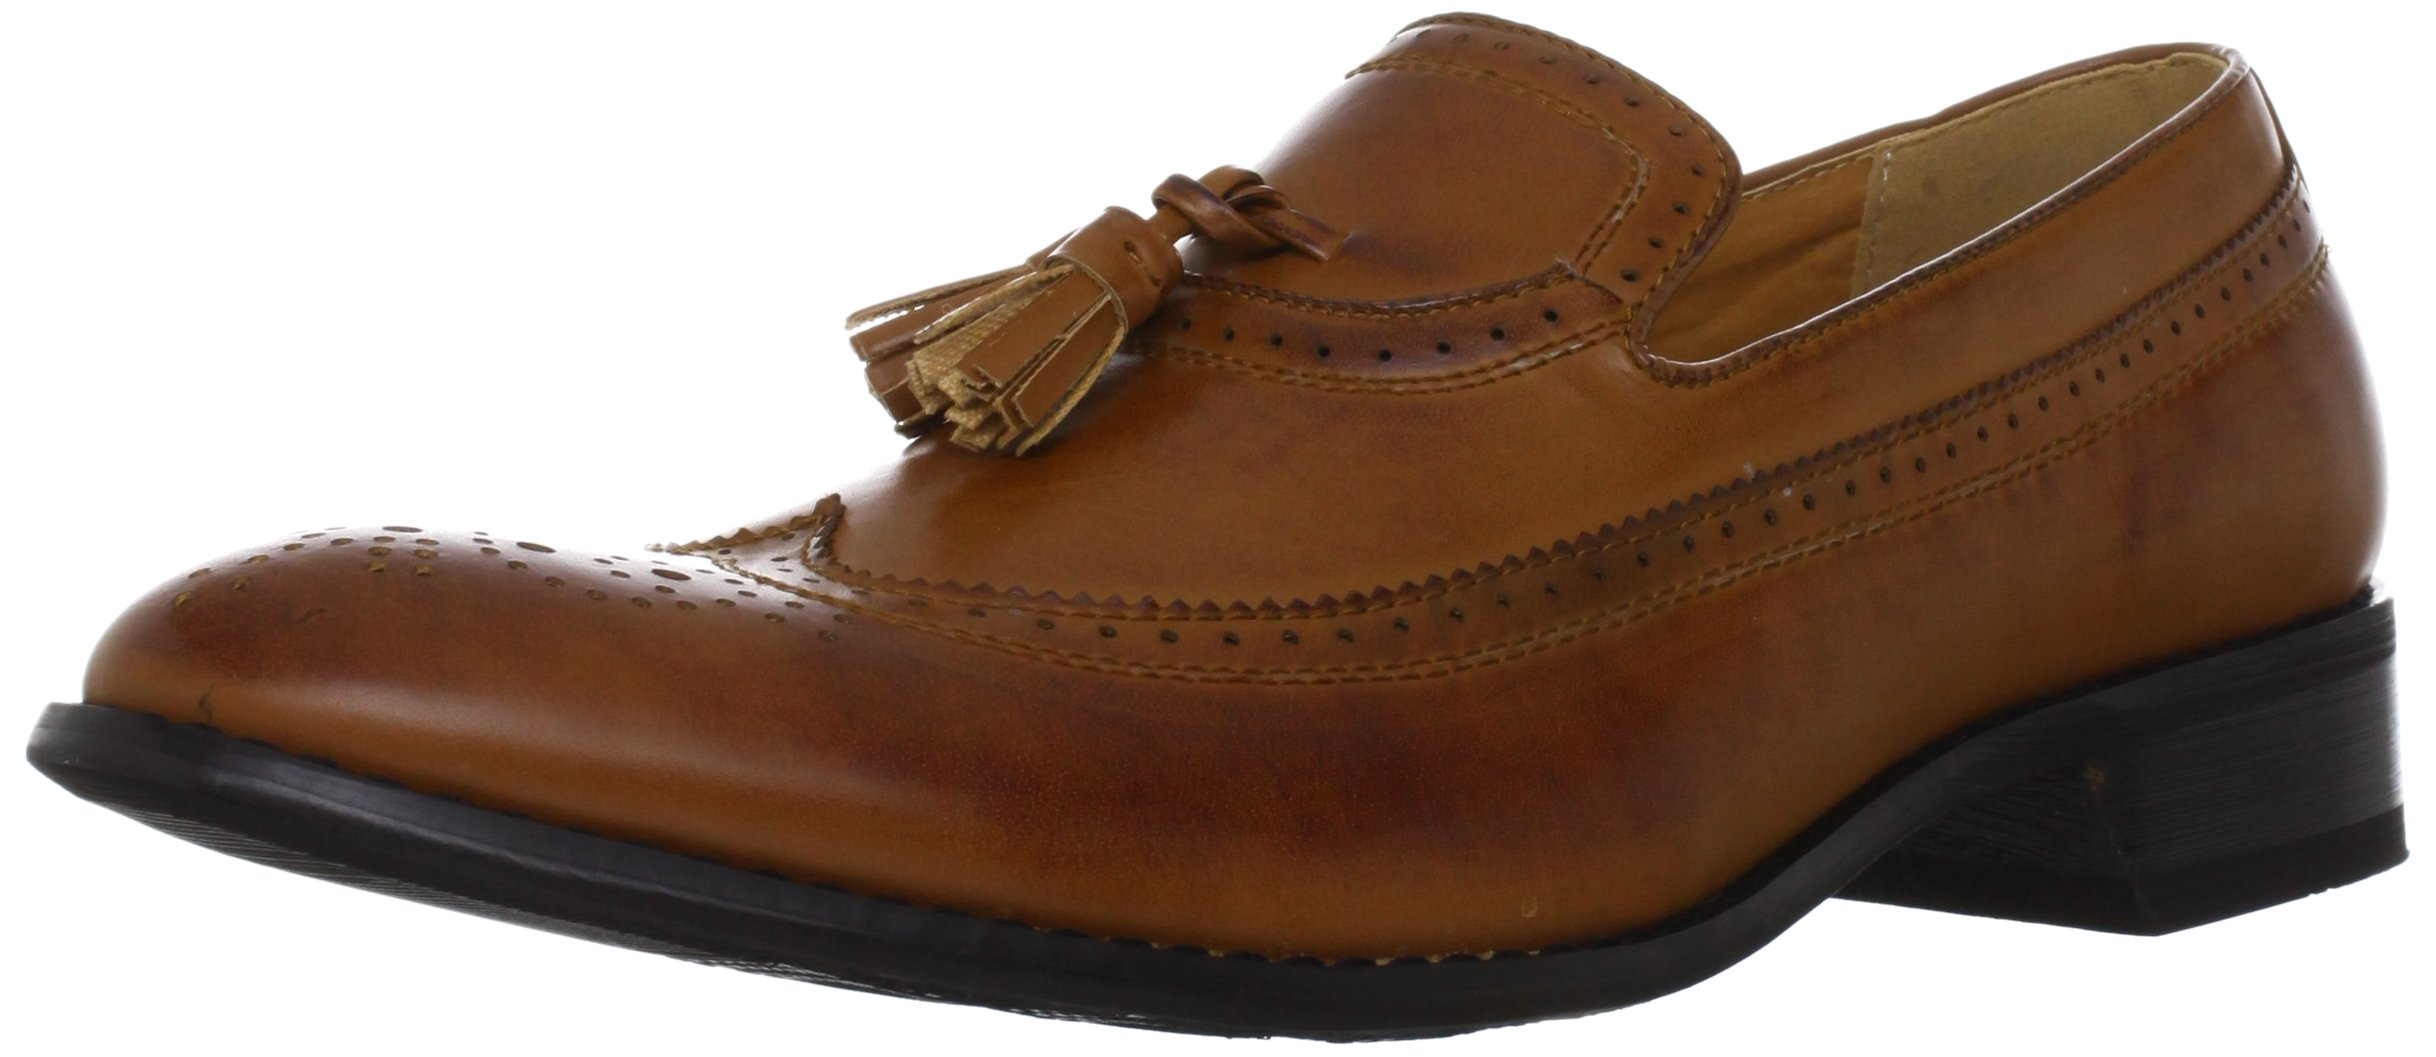 MM/ONE Men's Slip-on Wing-tip Medallion Round Toe Casual Tassel Lofoar, Brown, 44 EU (US Men's 10.5 M)